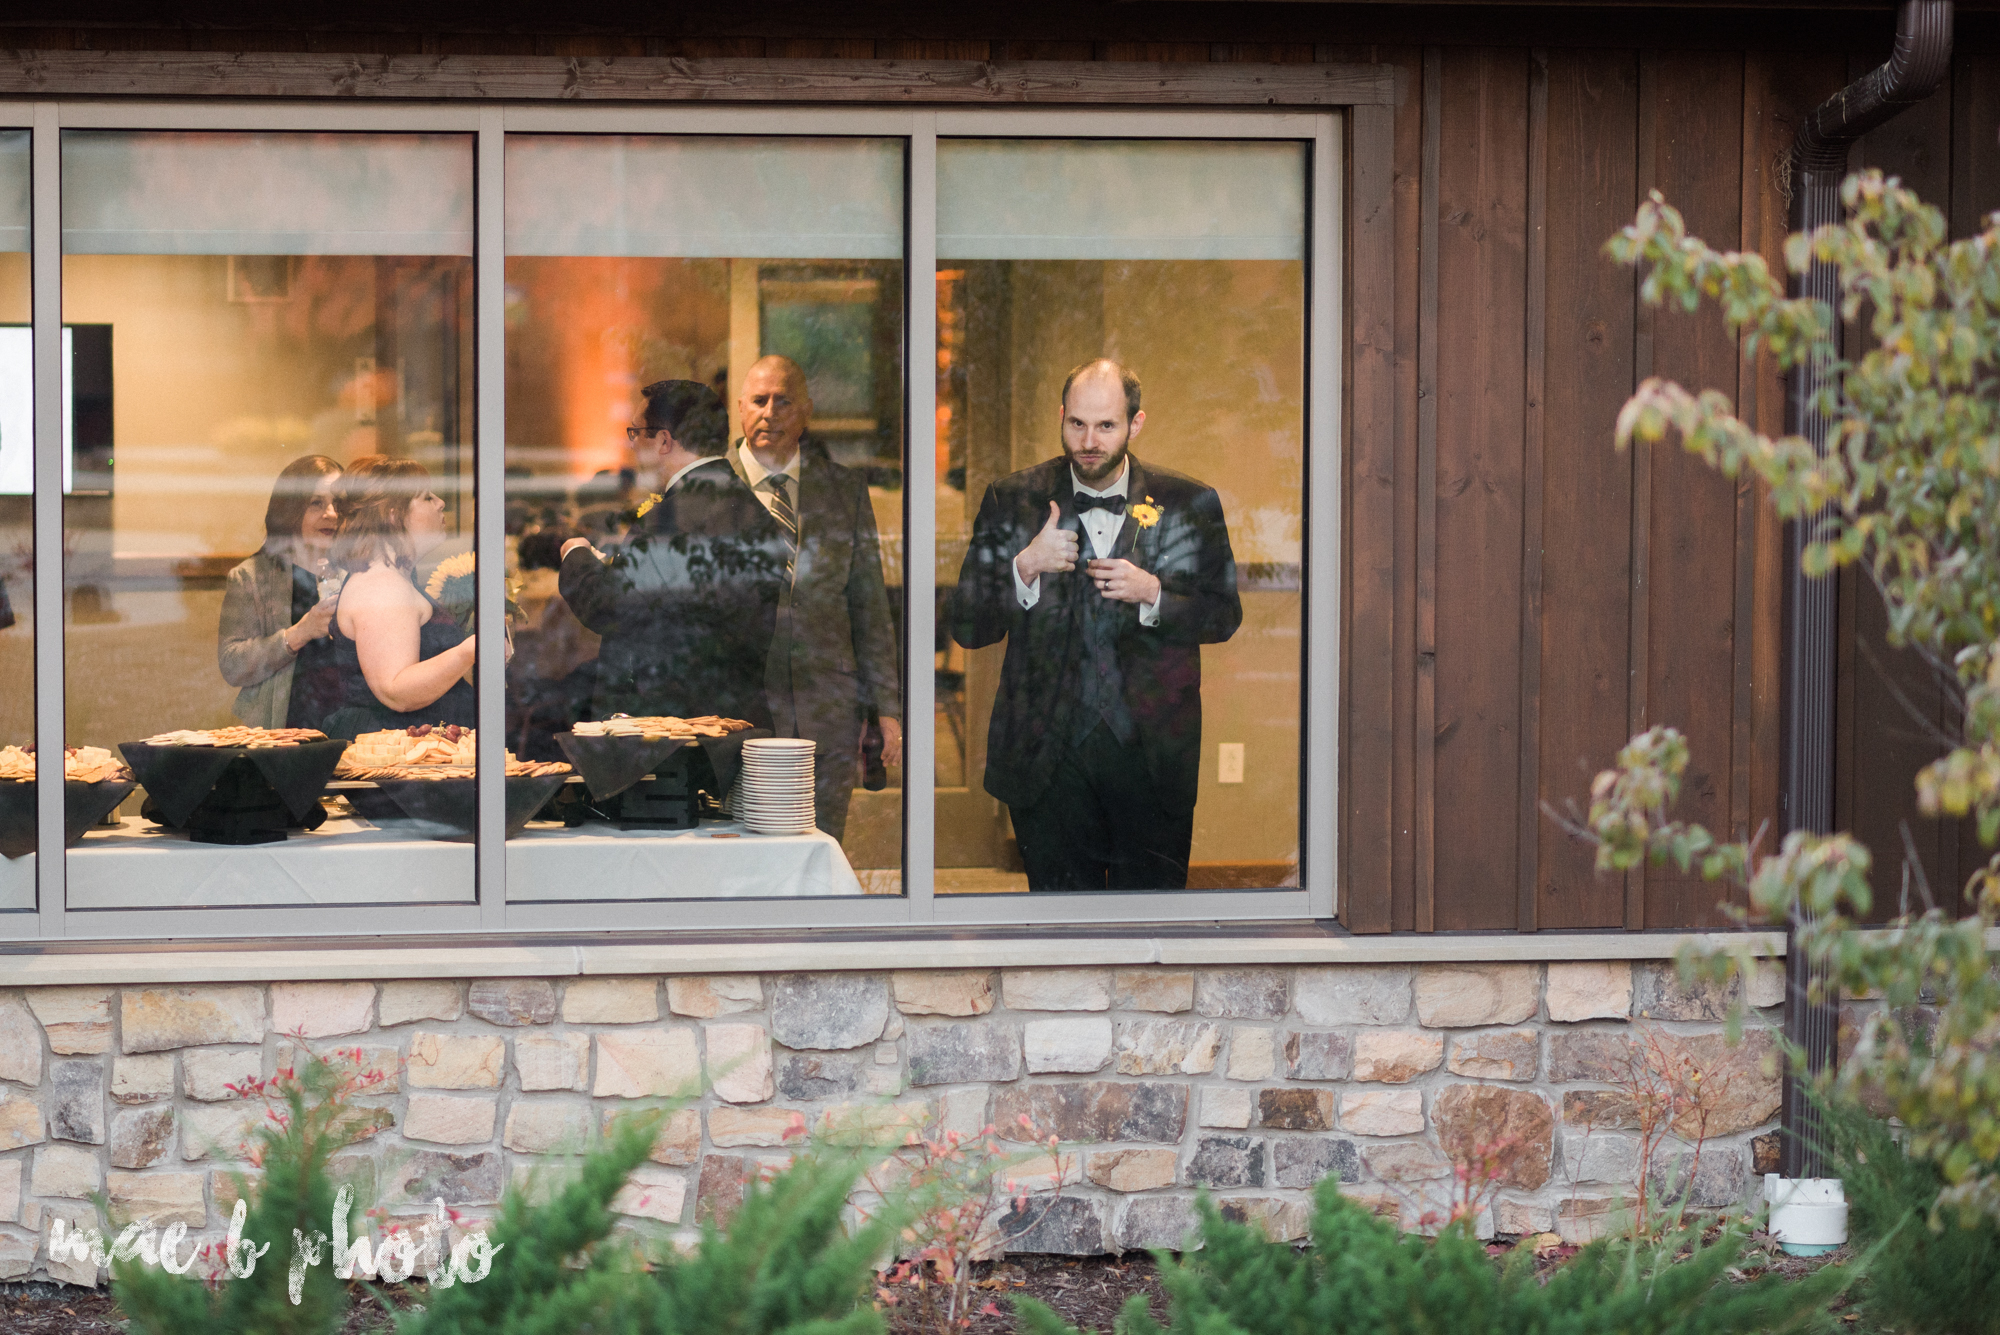 kaylynn & matt's fall zoo wedding at the cleveland metroparks zoo in cleveland ohio photographed by mae b photo-31.jpg